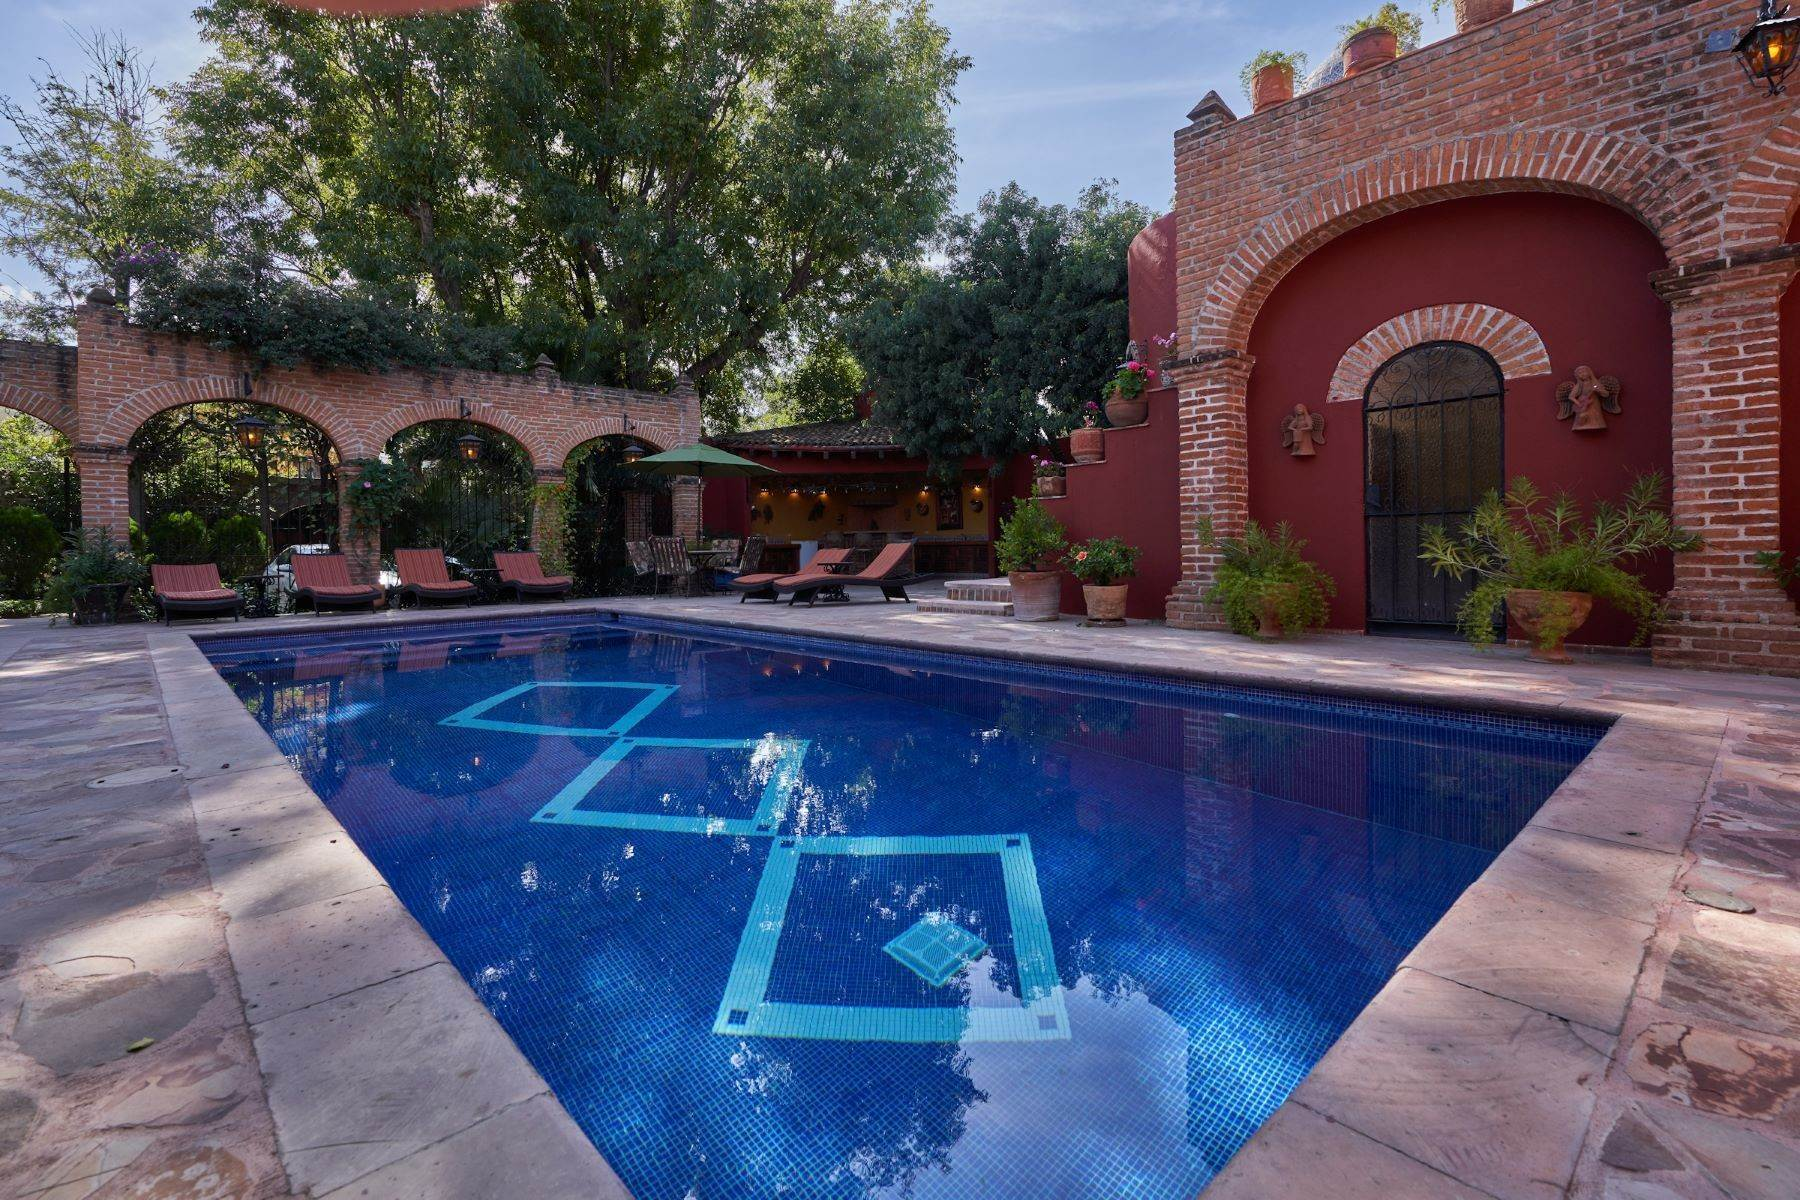 Property for Sale at Casa de la Luz San Miguel De Allende, Guanajuato 37700 Mexico